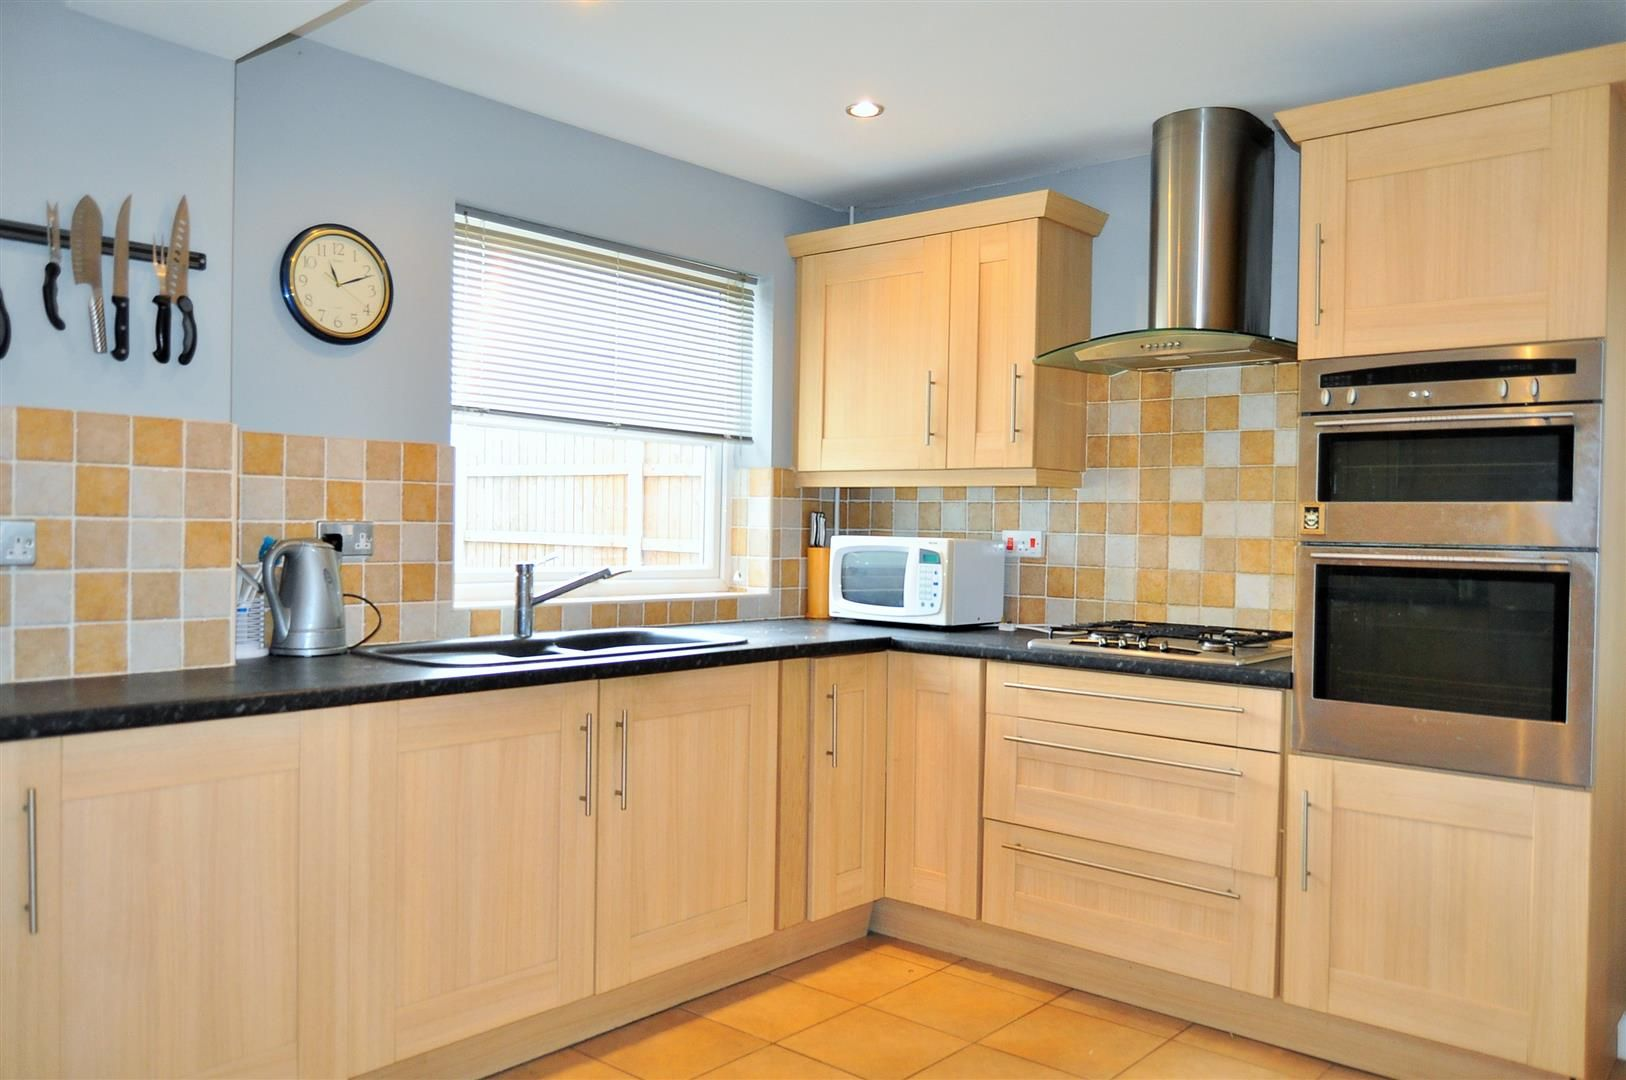 4 bed detached for sale  - Property Image 3